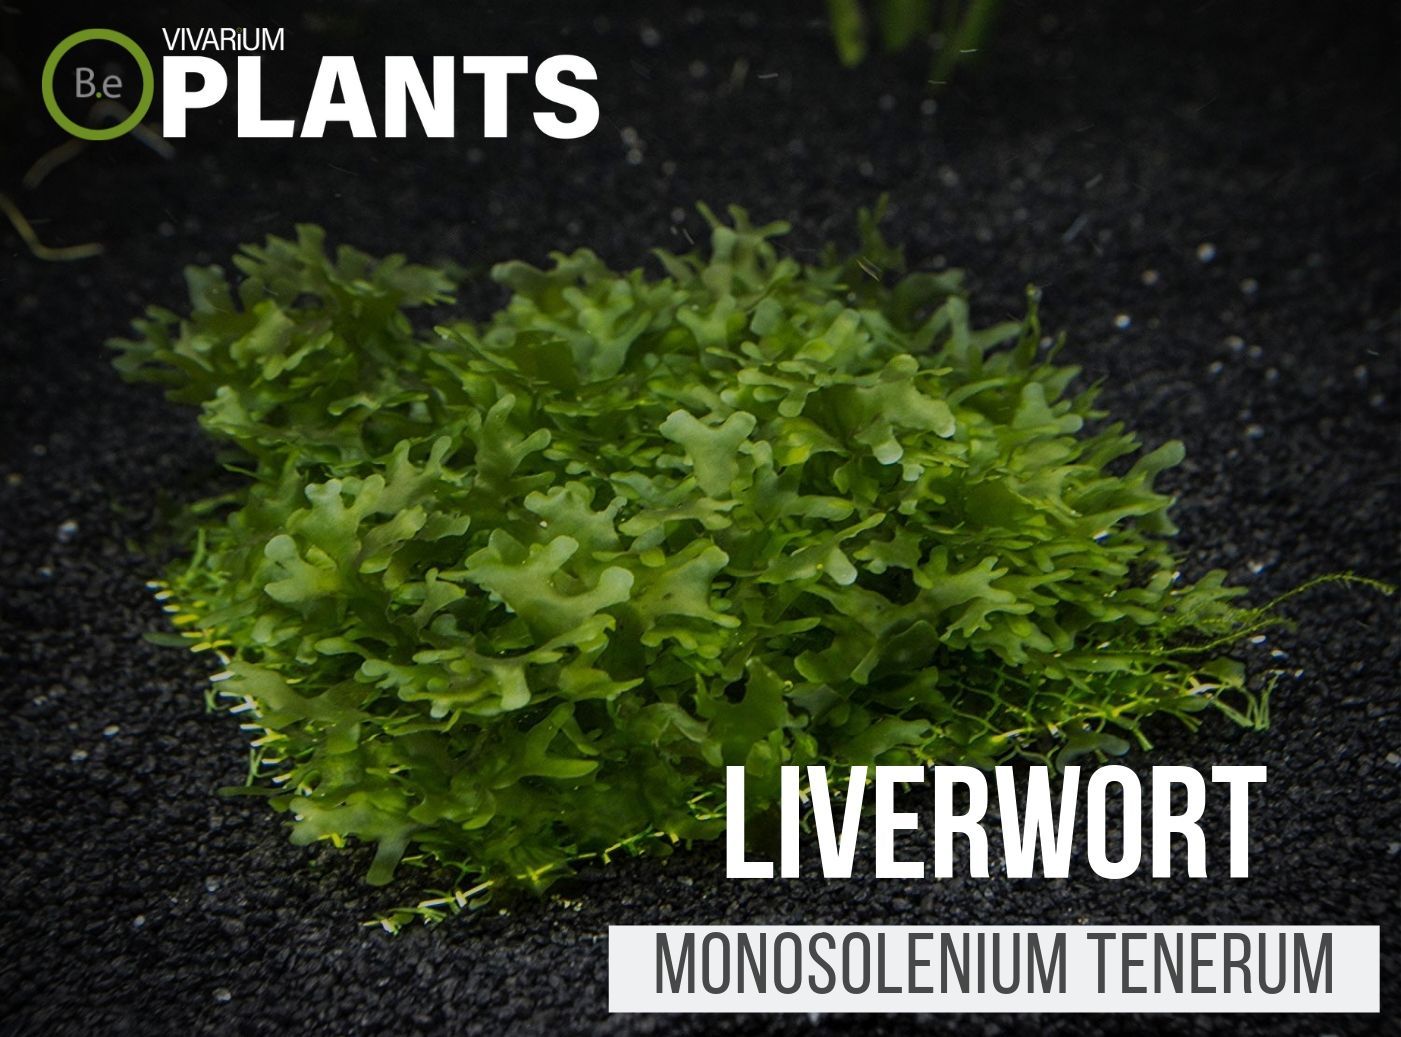 Liverwort Monosolenium Tenerum